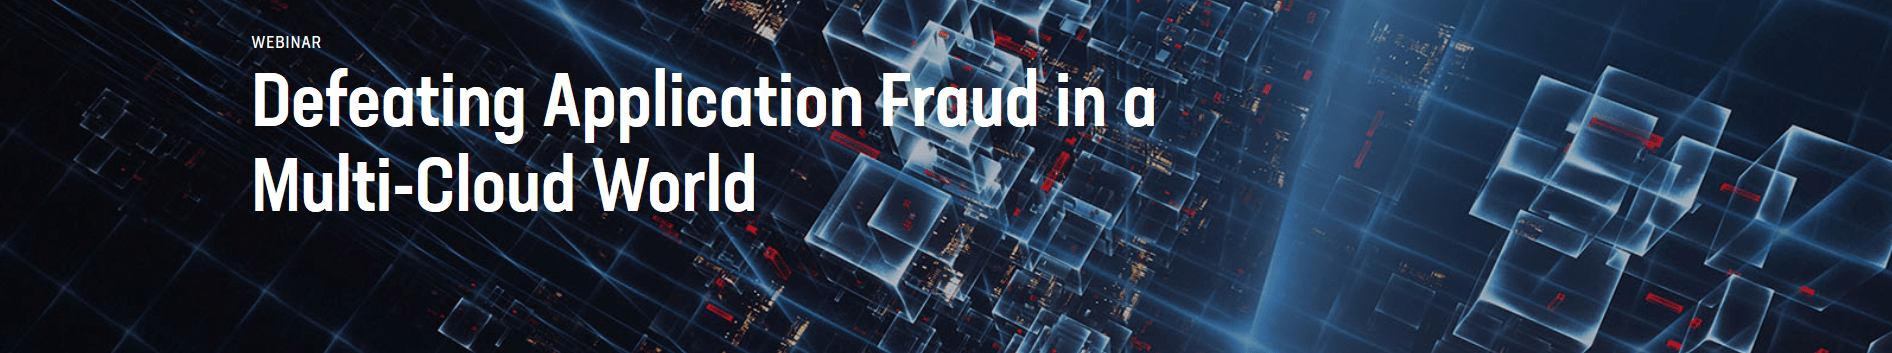 Defeating Application Fraud in a Multi-Cloud World -TechProspect Defeating Application Fraud in a Multi-Cloud World -TechProspect